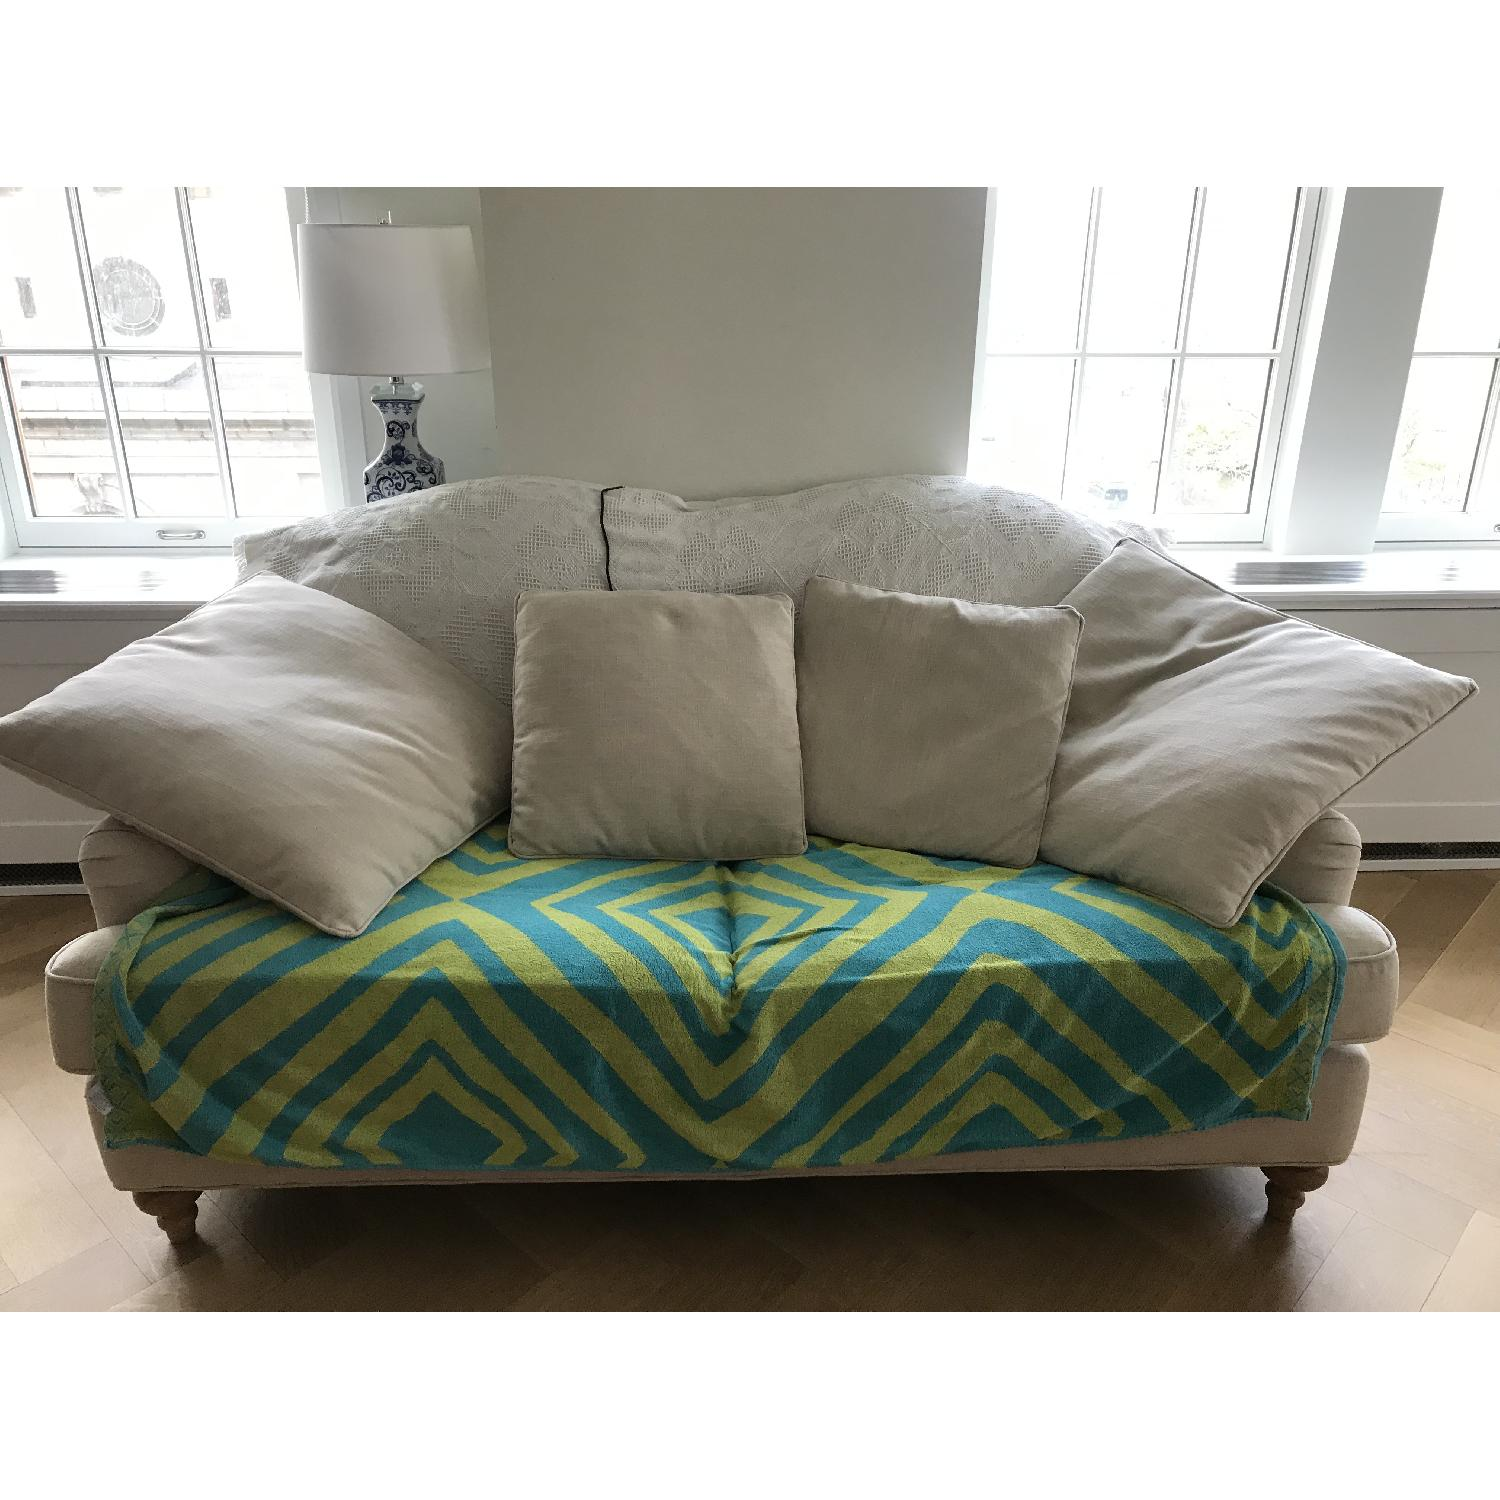 Magnolia Home by Joanna Gaines Loveseat-4